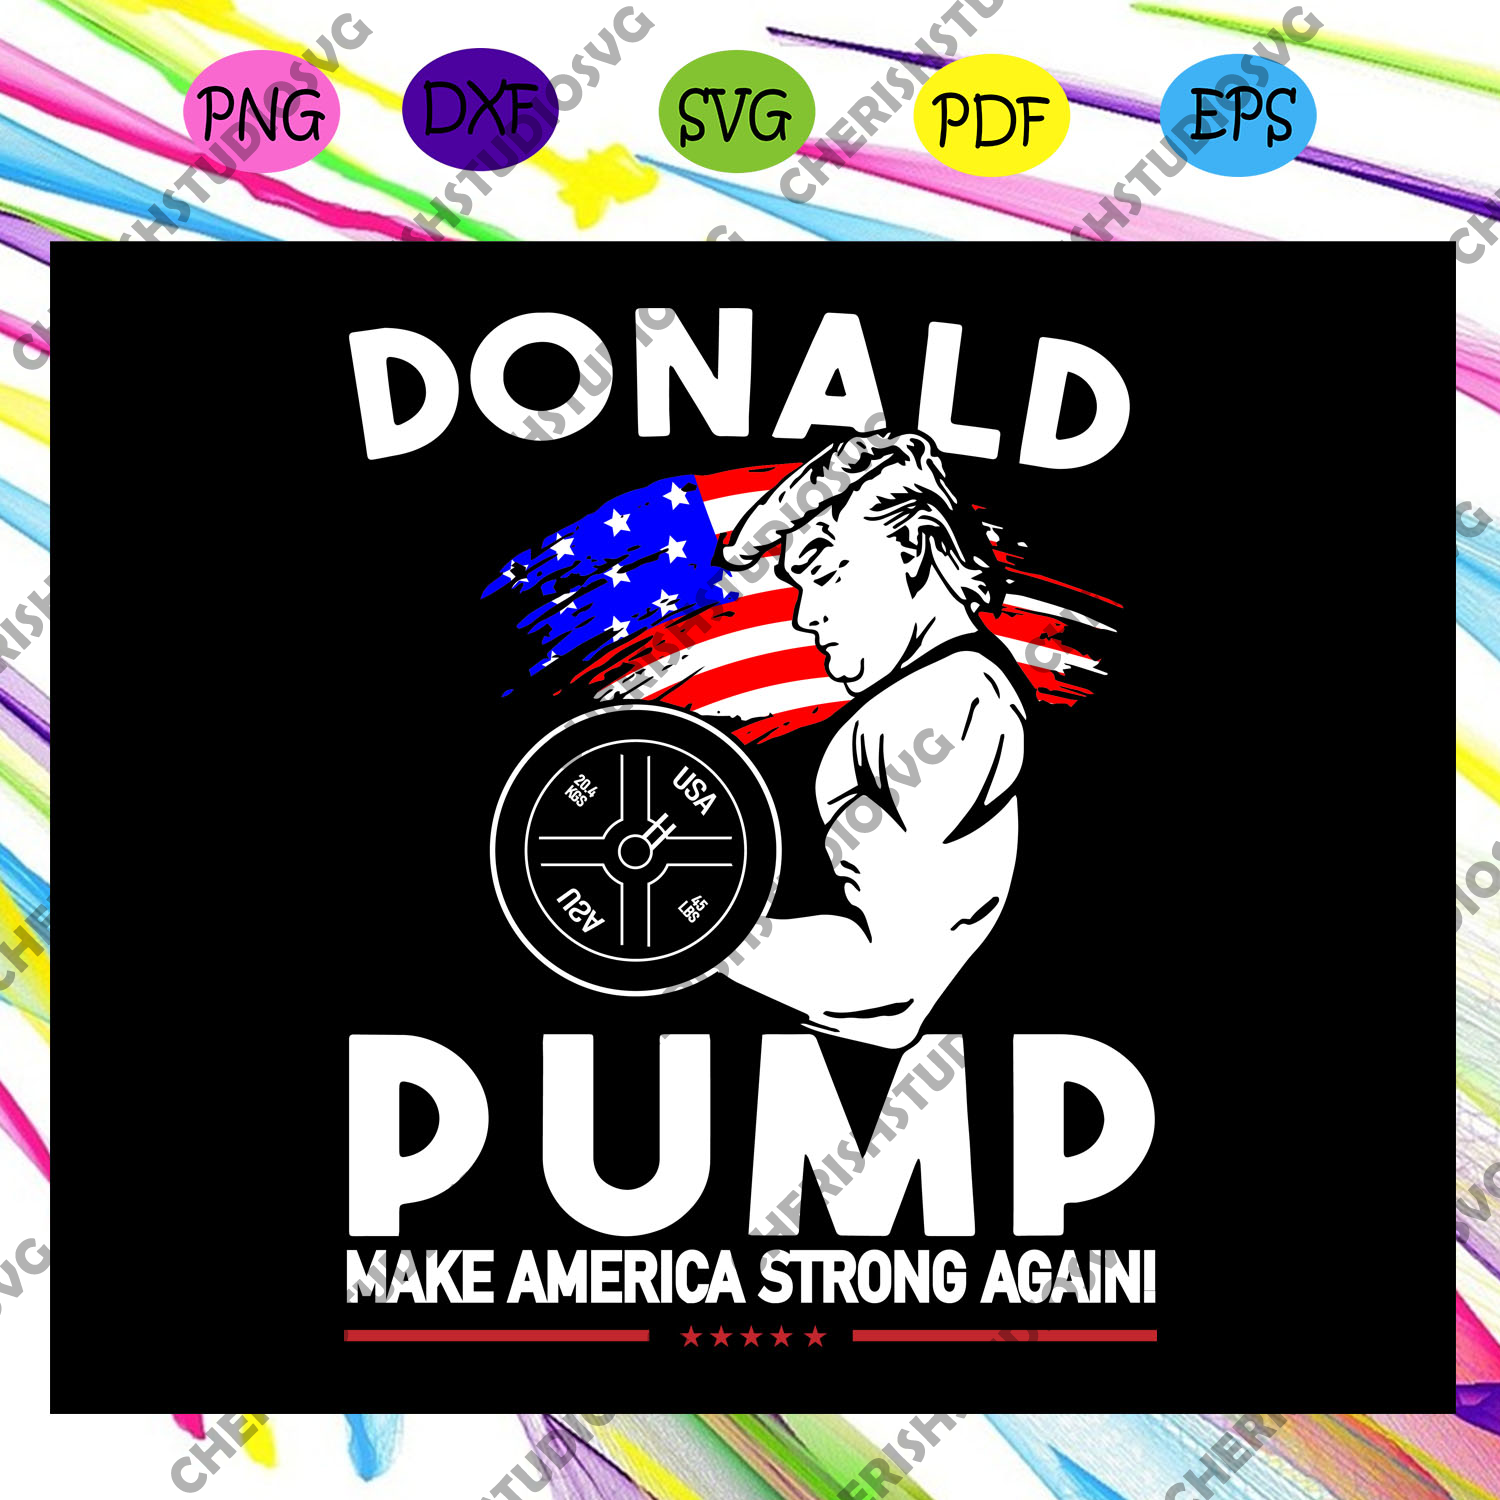 Donal pump make americca strong again, independence day svg, independence day gift, trump svg, trump shirt, trump 2020,svg cricut, silhouette svg files, cricut svg, silhouette svg, svg designs, vinyl svg